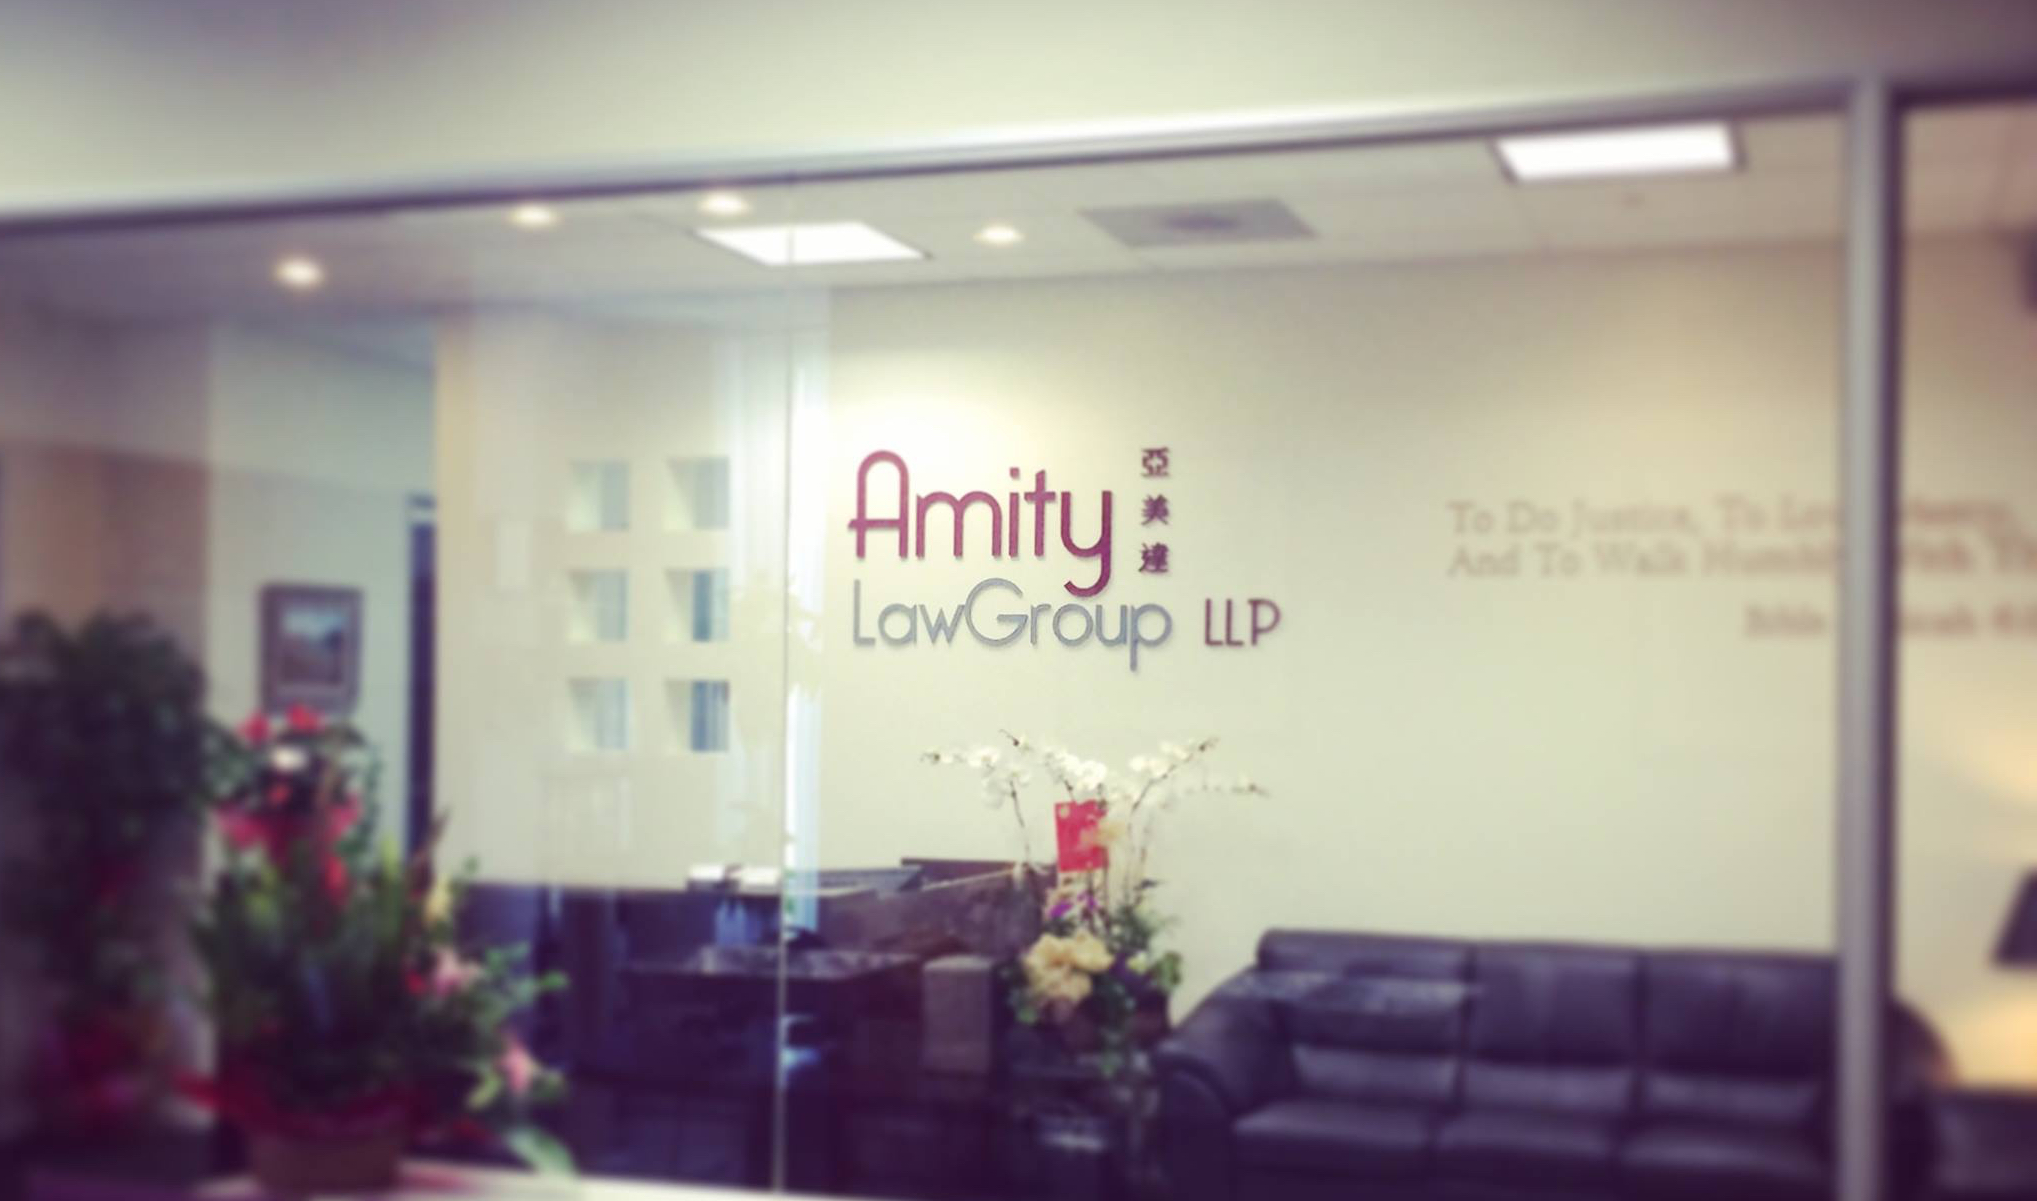 immigration-lawyer-arcadia-amity-law-group-office